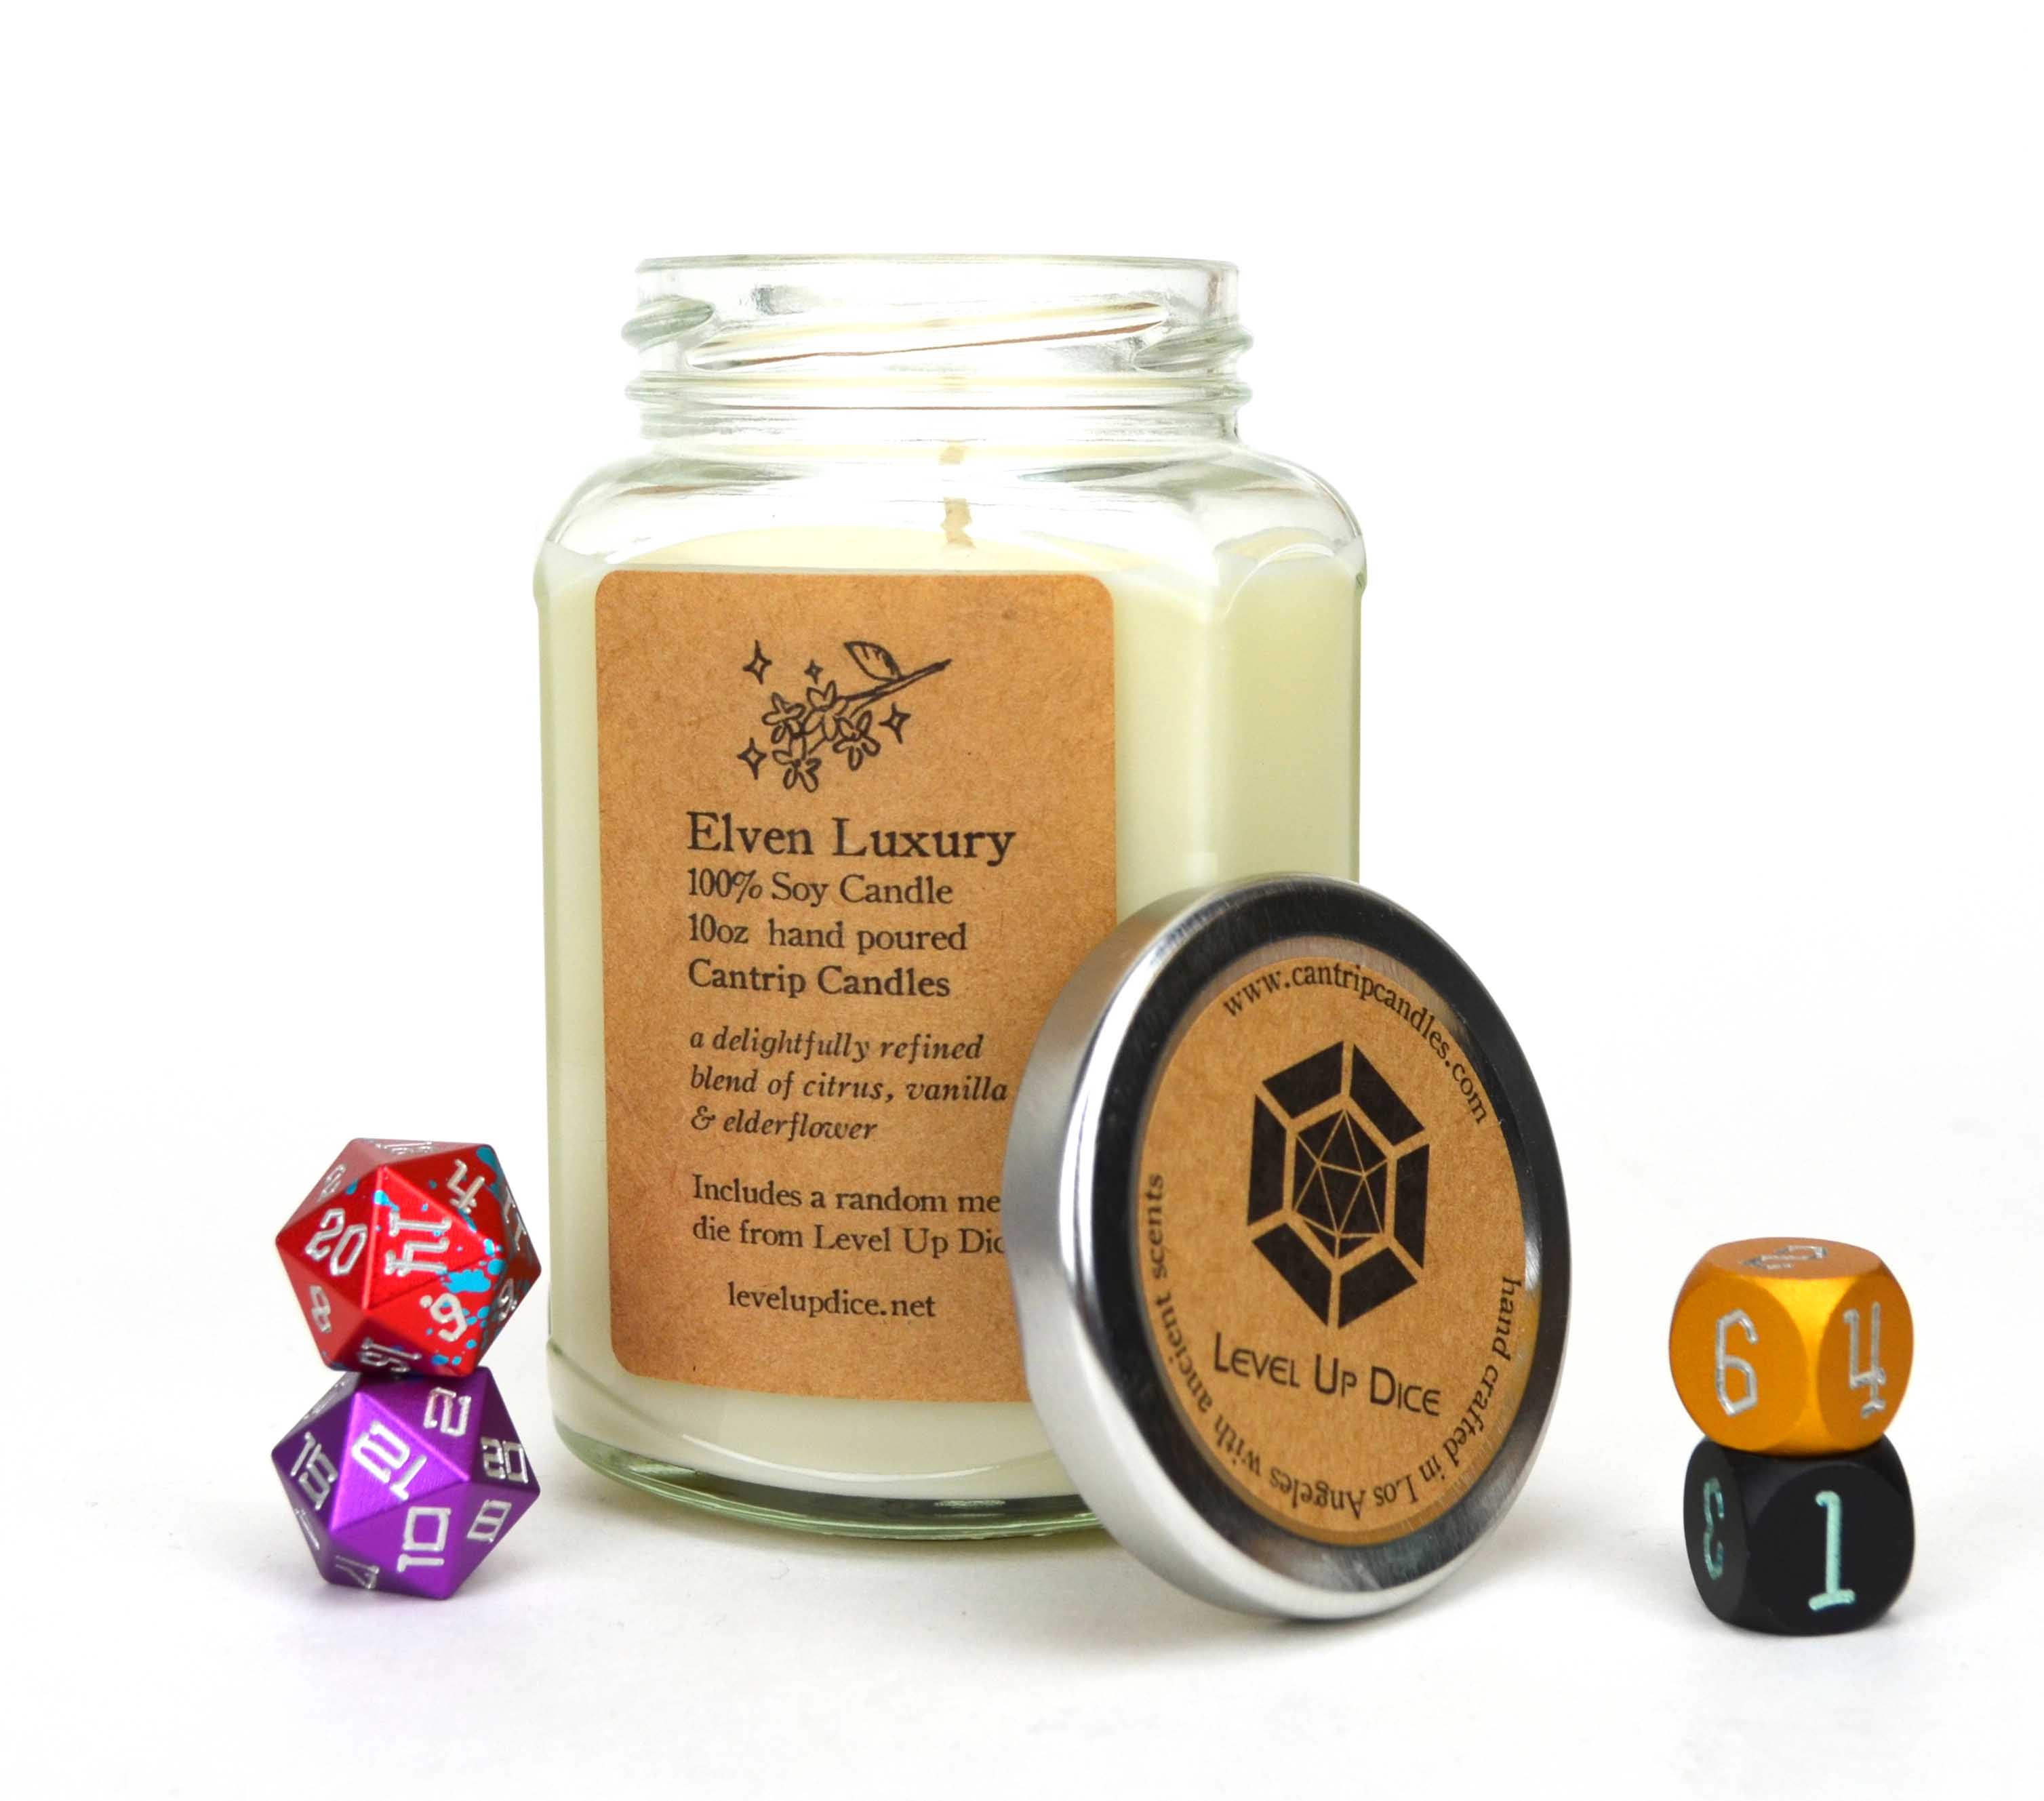 Elven Luxury, by Cantrip Candles